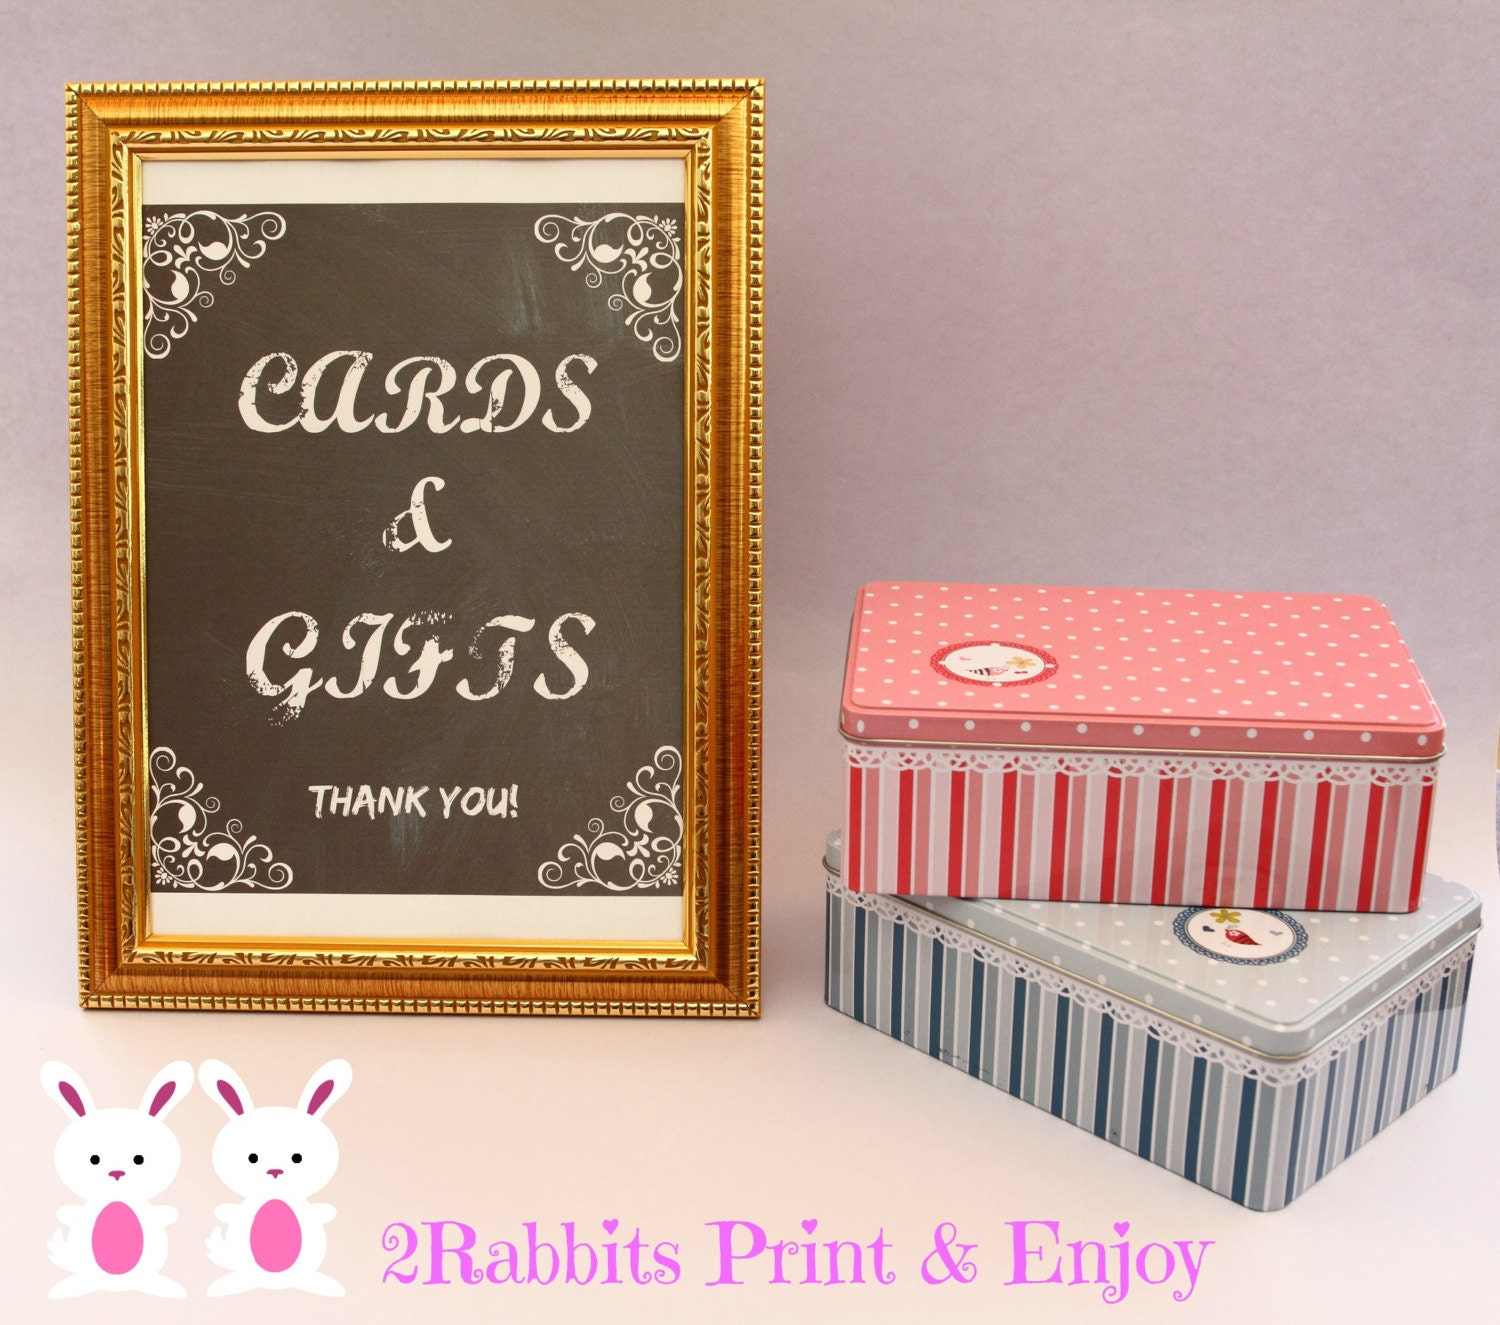 Thank You Sign For Wedding Gift Table : Cards & Gifts Thank You Sign for your Wedding Gift Table